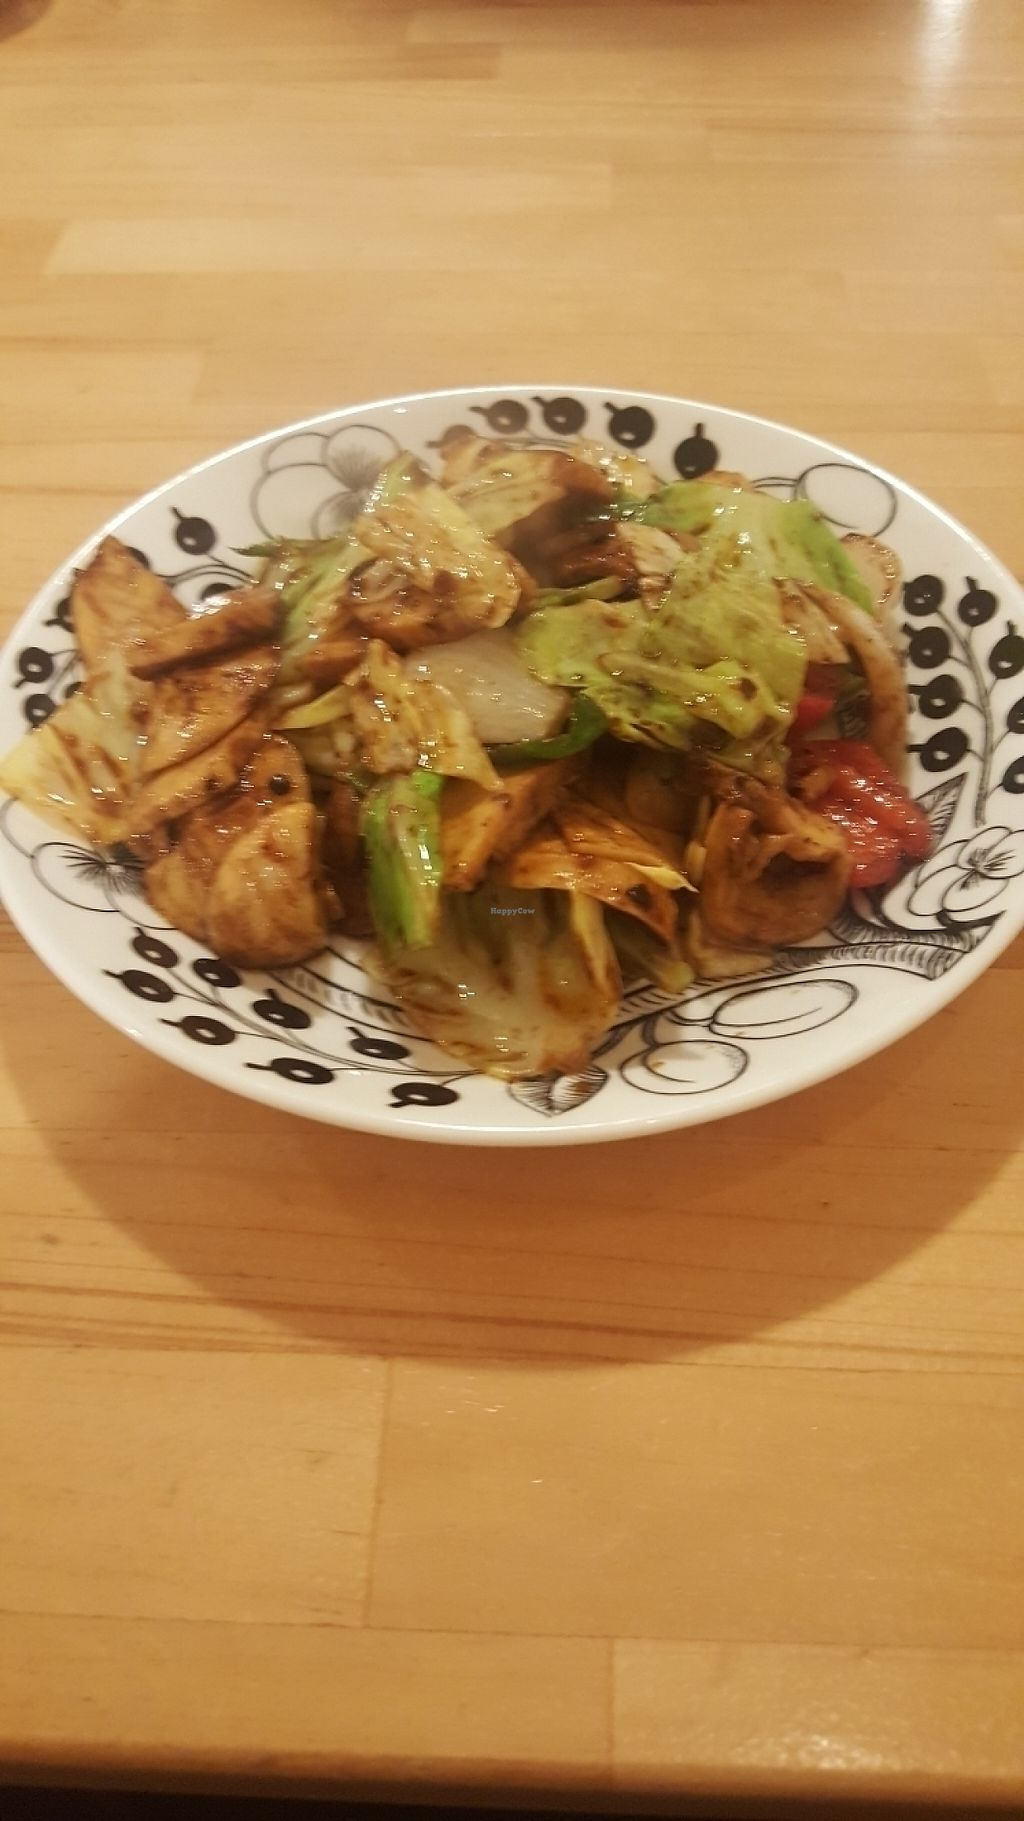 "Photo of Lo Fuo  by <a href=""/members/profile/AustinG"">AustinG</a> <br/>dried tofu and cabbage spicy miso fries <br/> May 25, 2017  - <a href='/contact/abuse/image/46161/262327'>Report</a>"